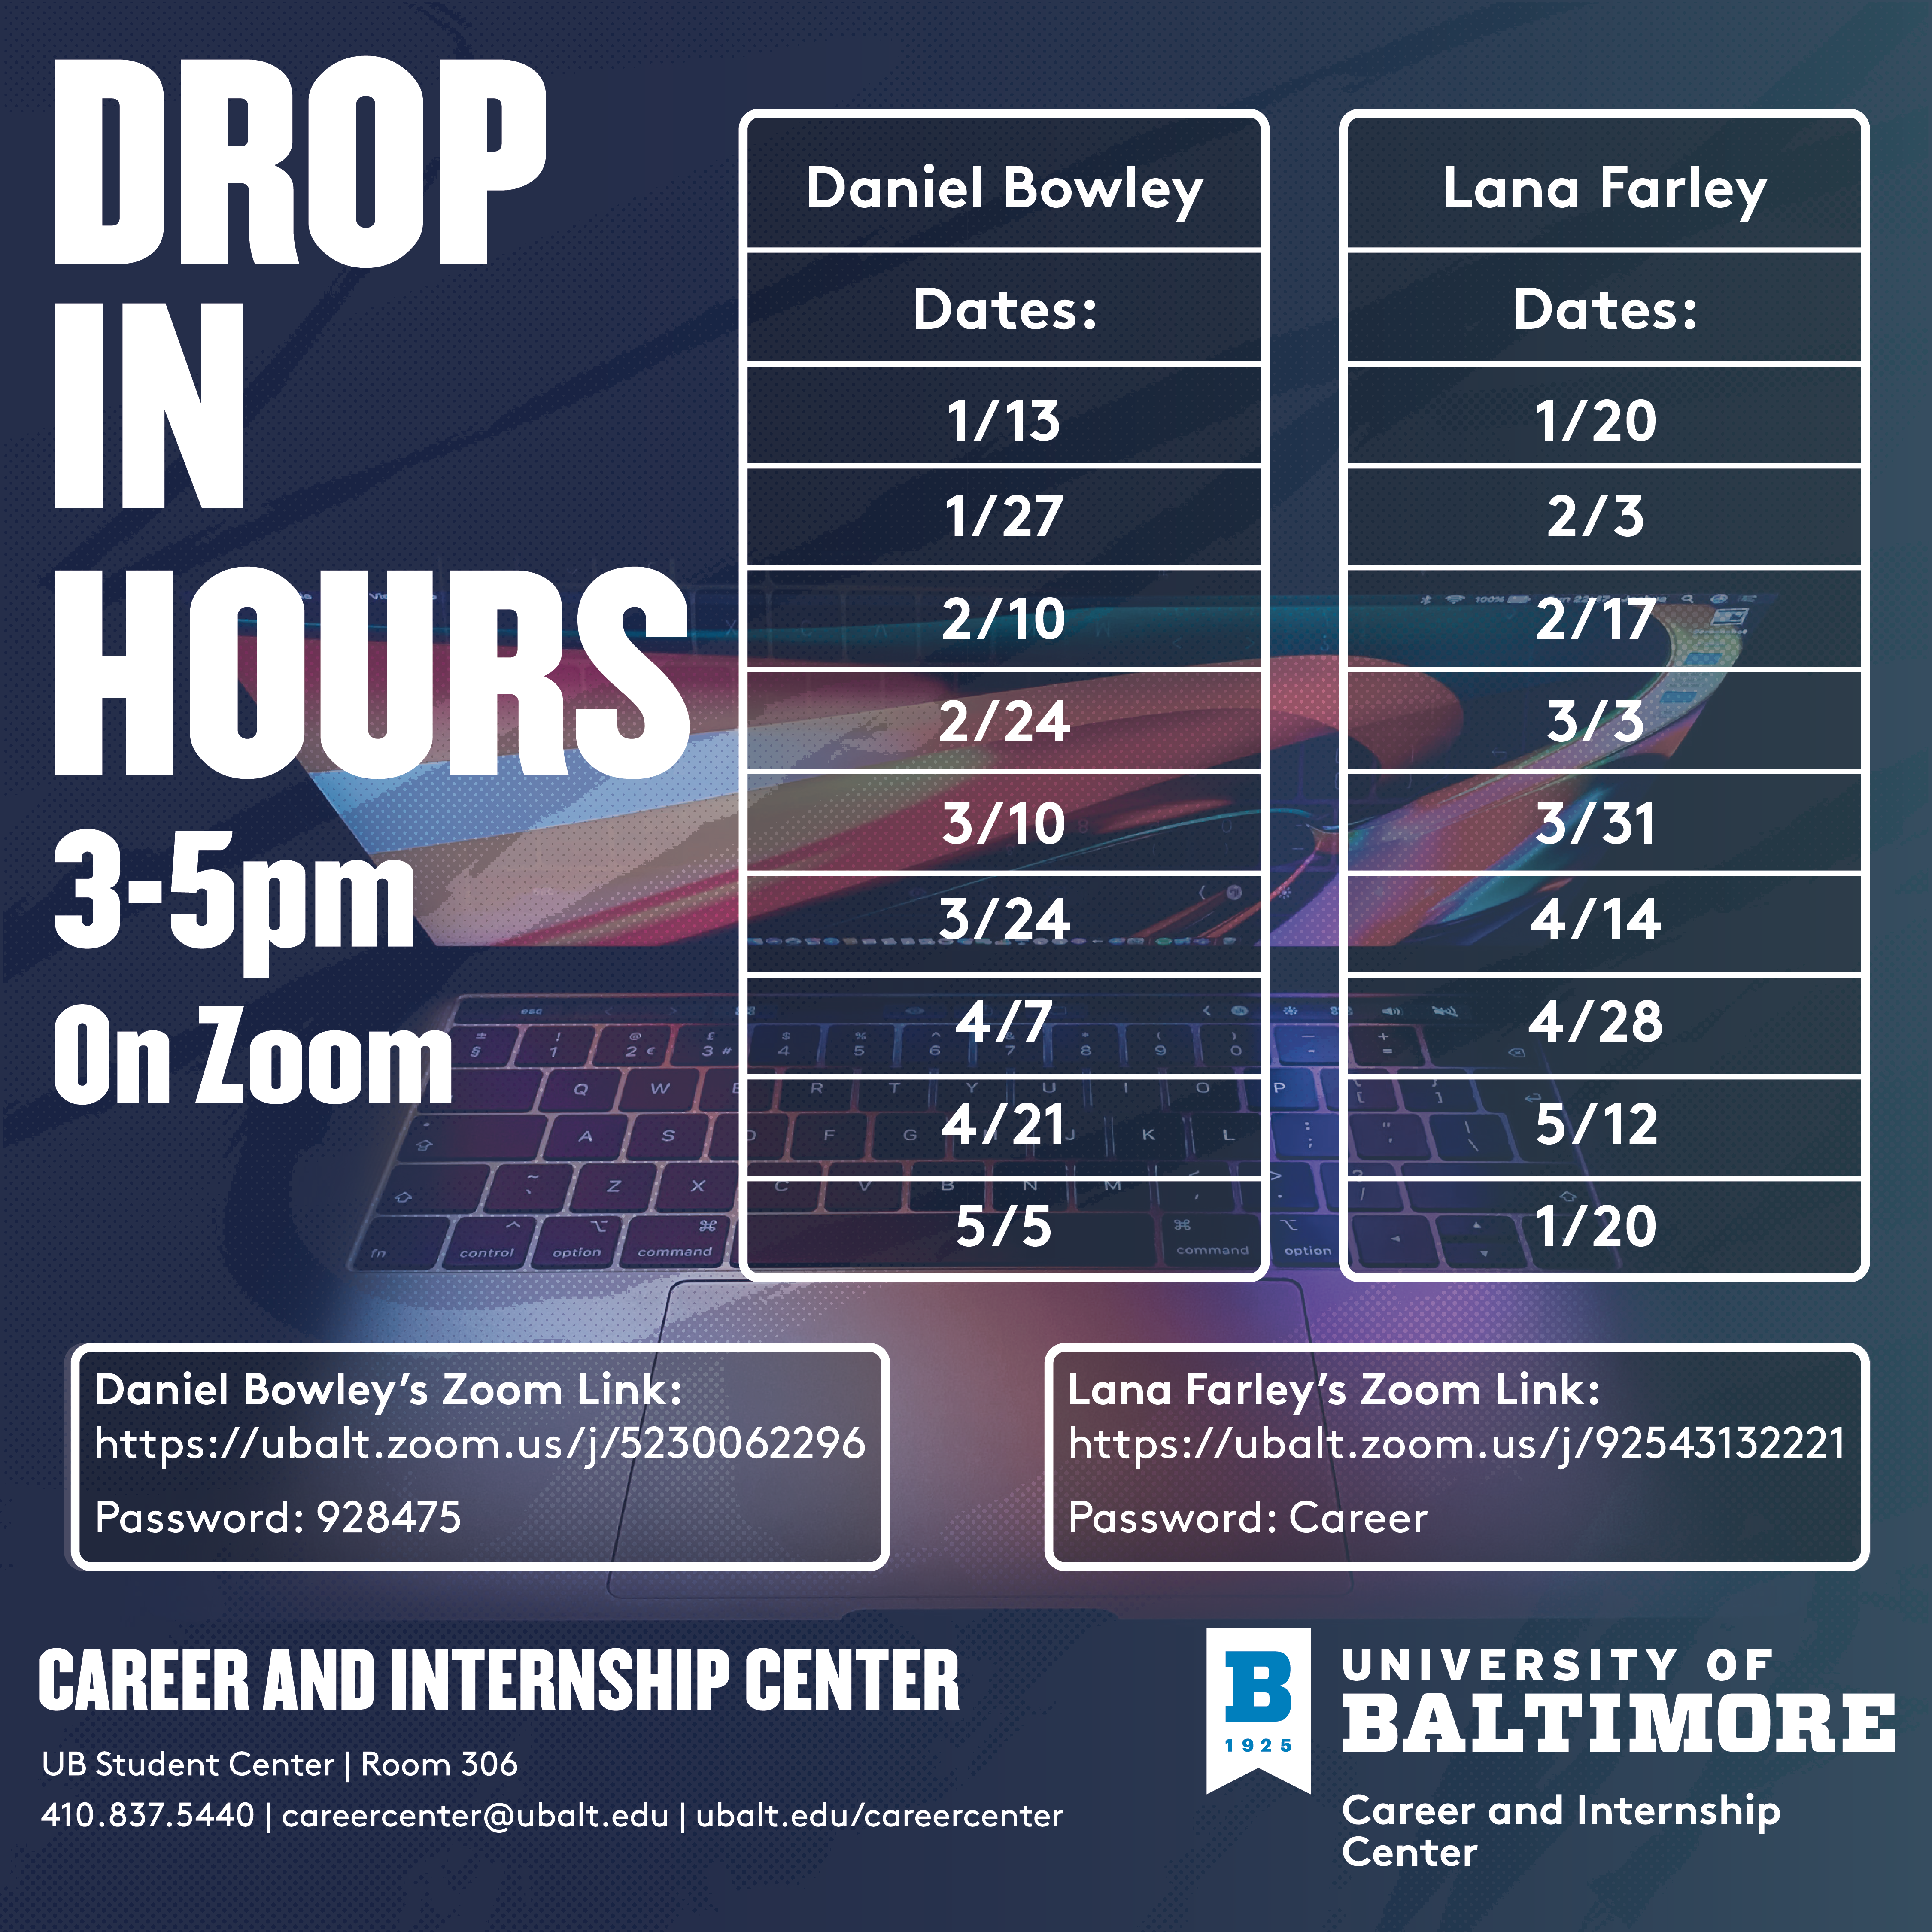 Drop-In Hours